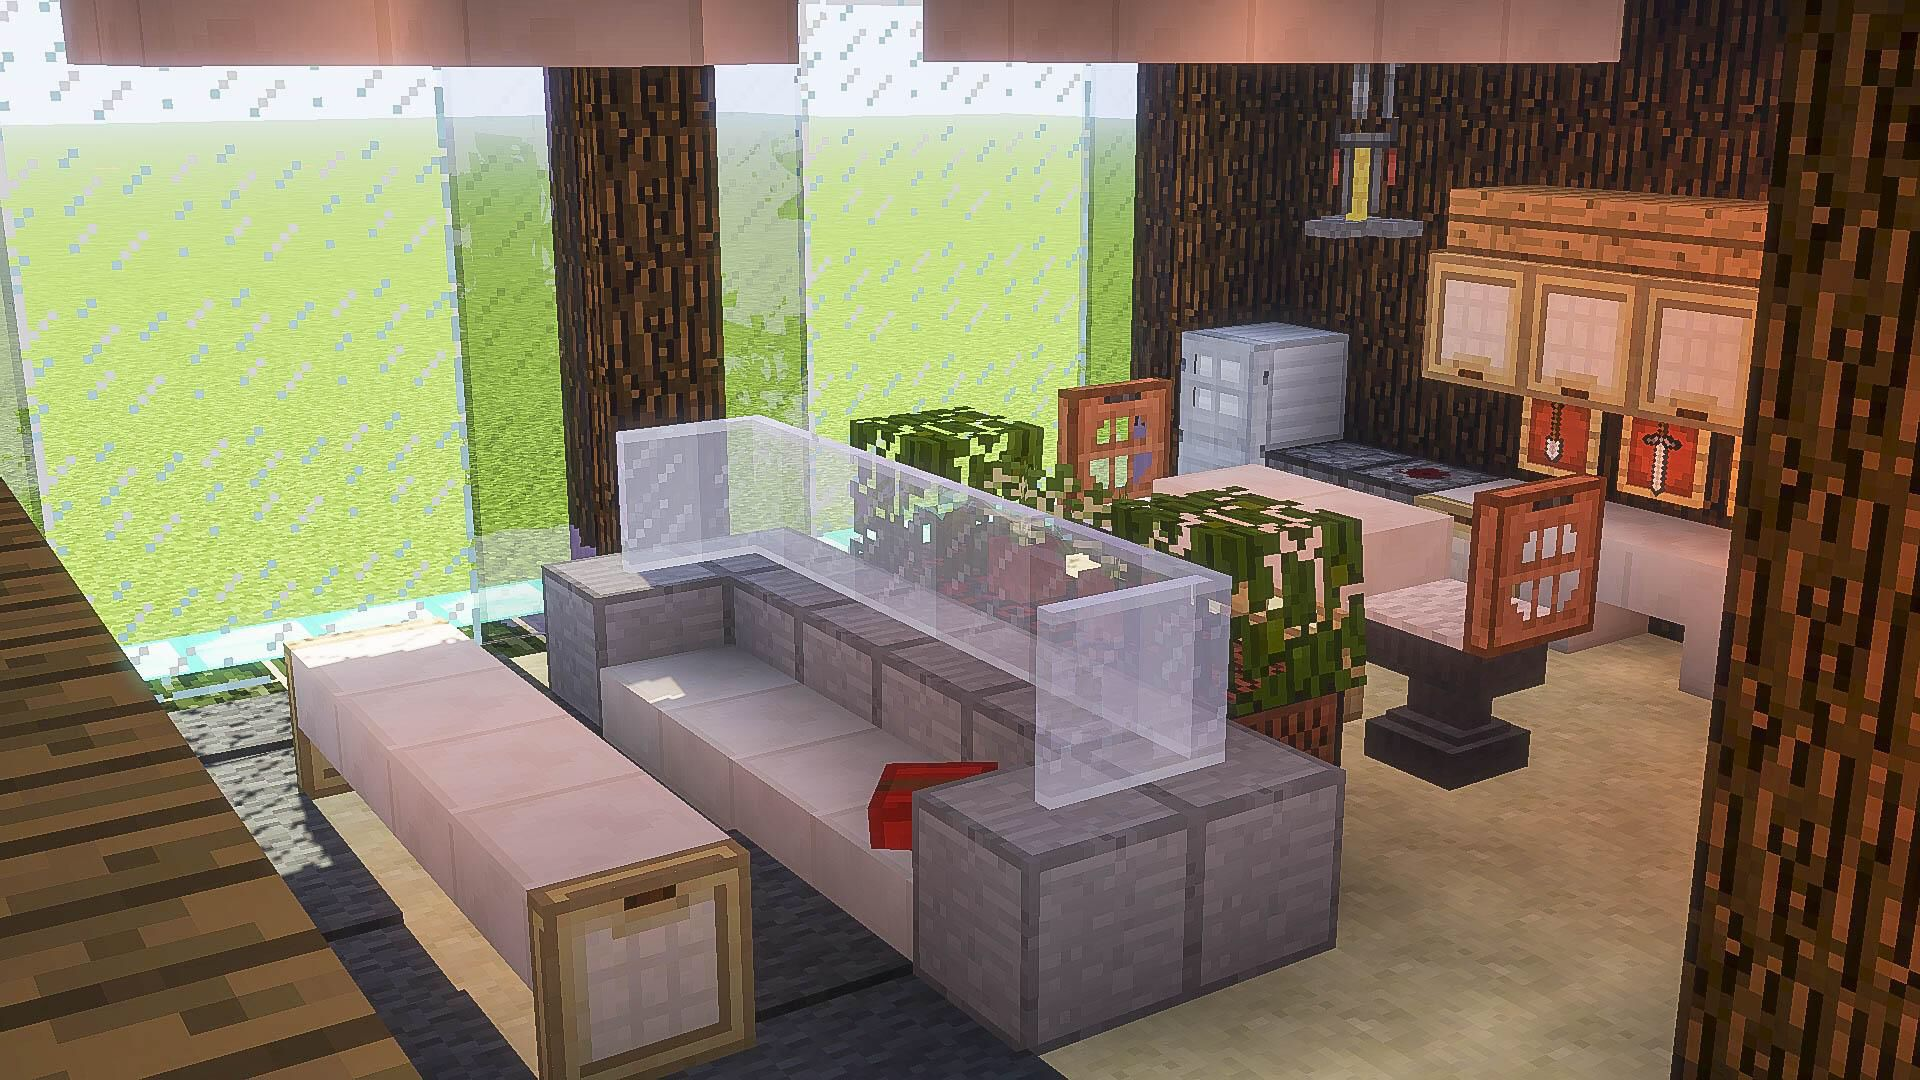 Minecraft Interiors Saving For The Anvils As Chairs Idea Minecraft Interior Design Minecraft Houses Minecraft Mansion